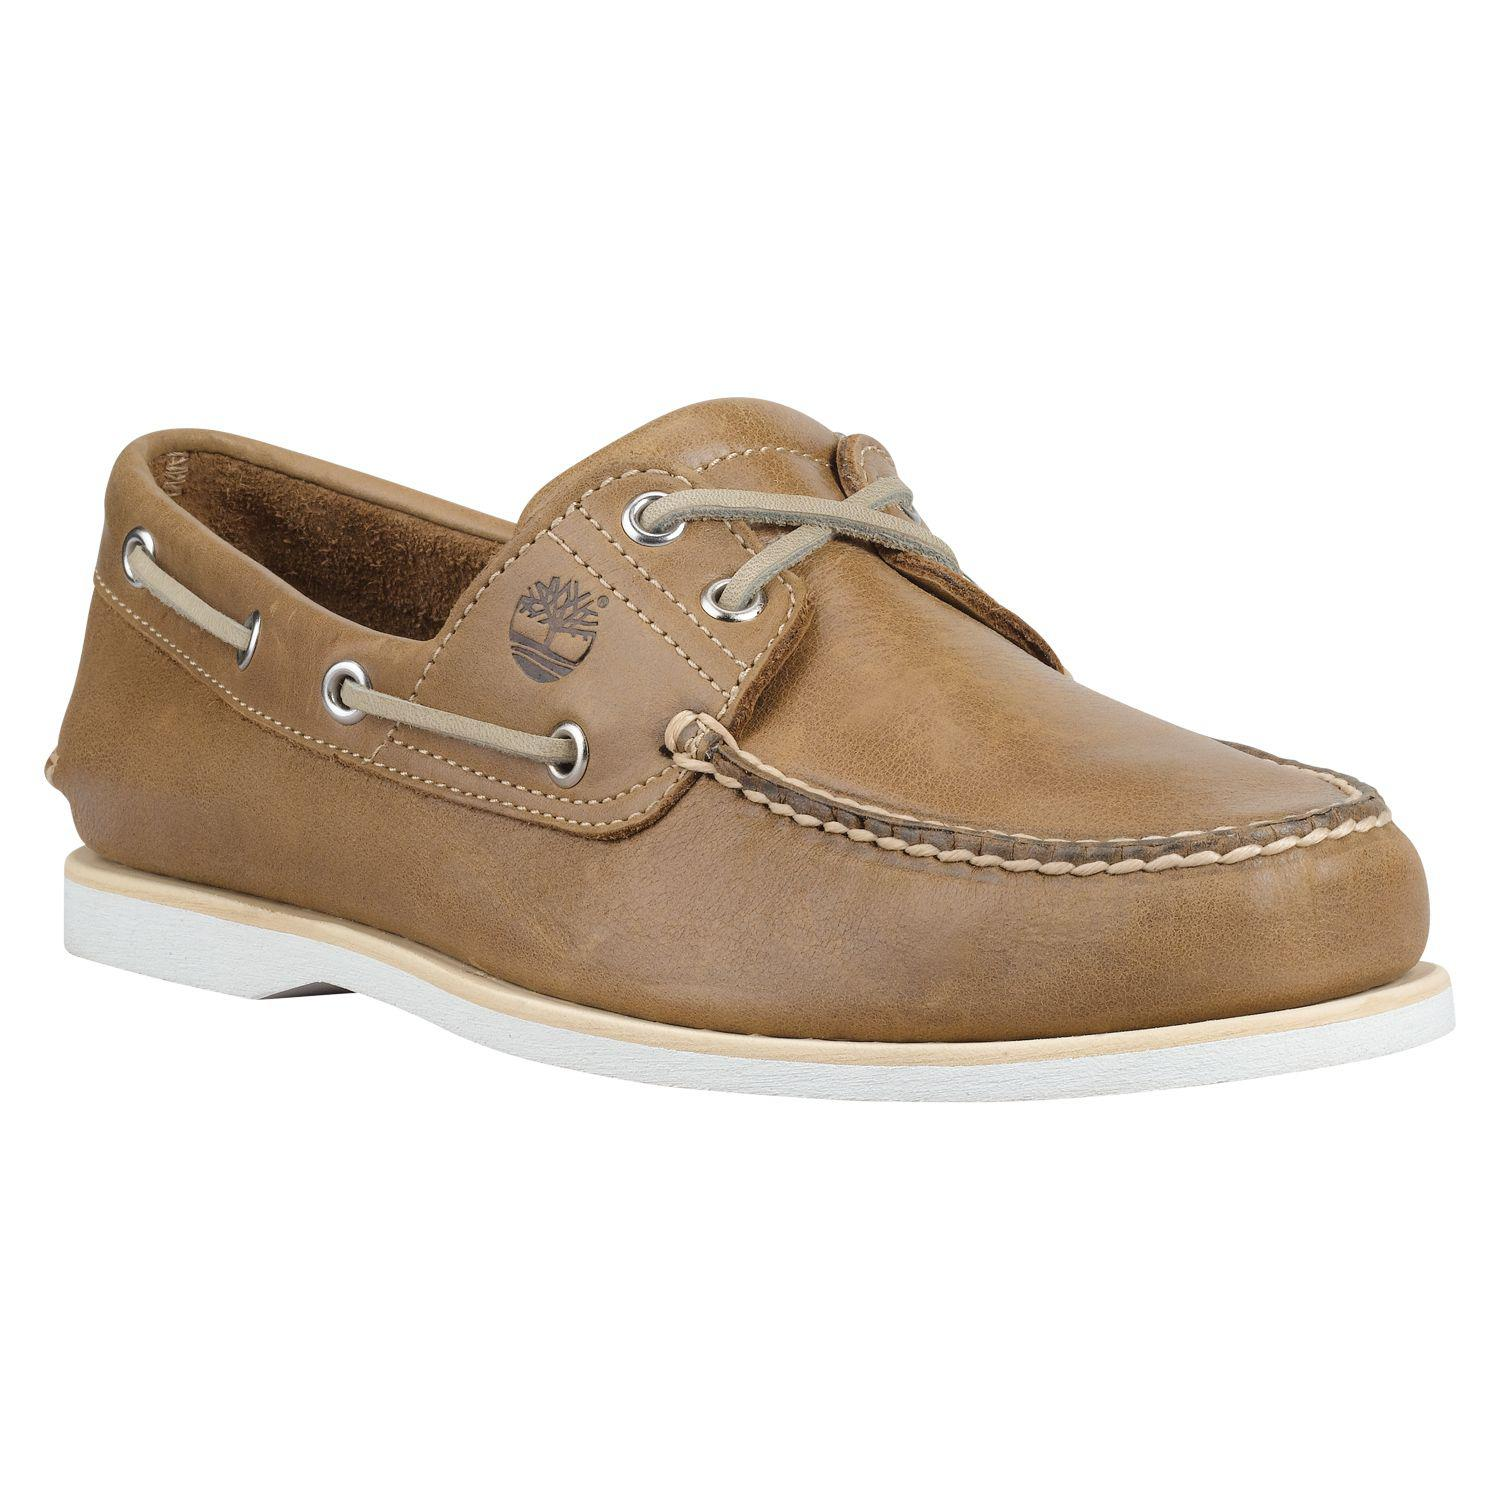 5652b6783eb Lyst - Timberland Icon 2-eye Boat Shoes in Brown for Men